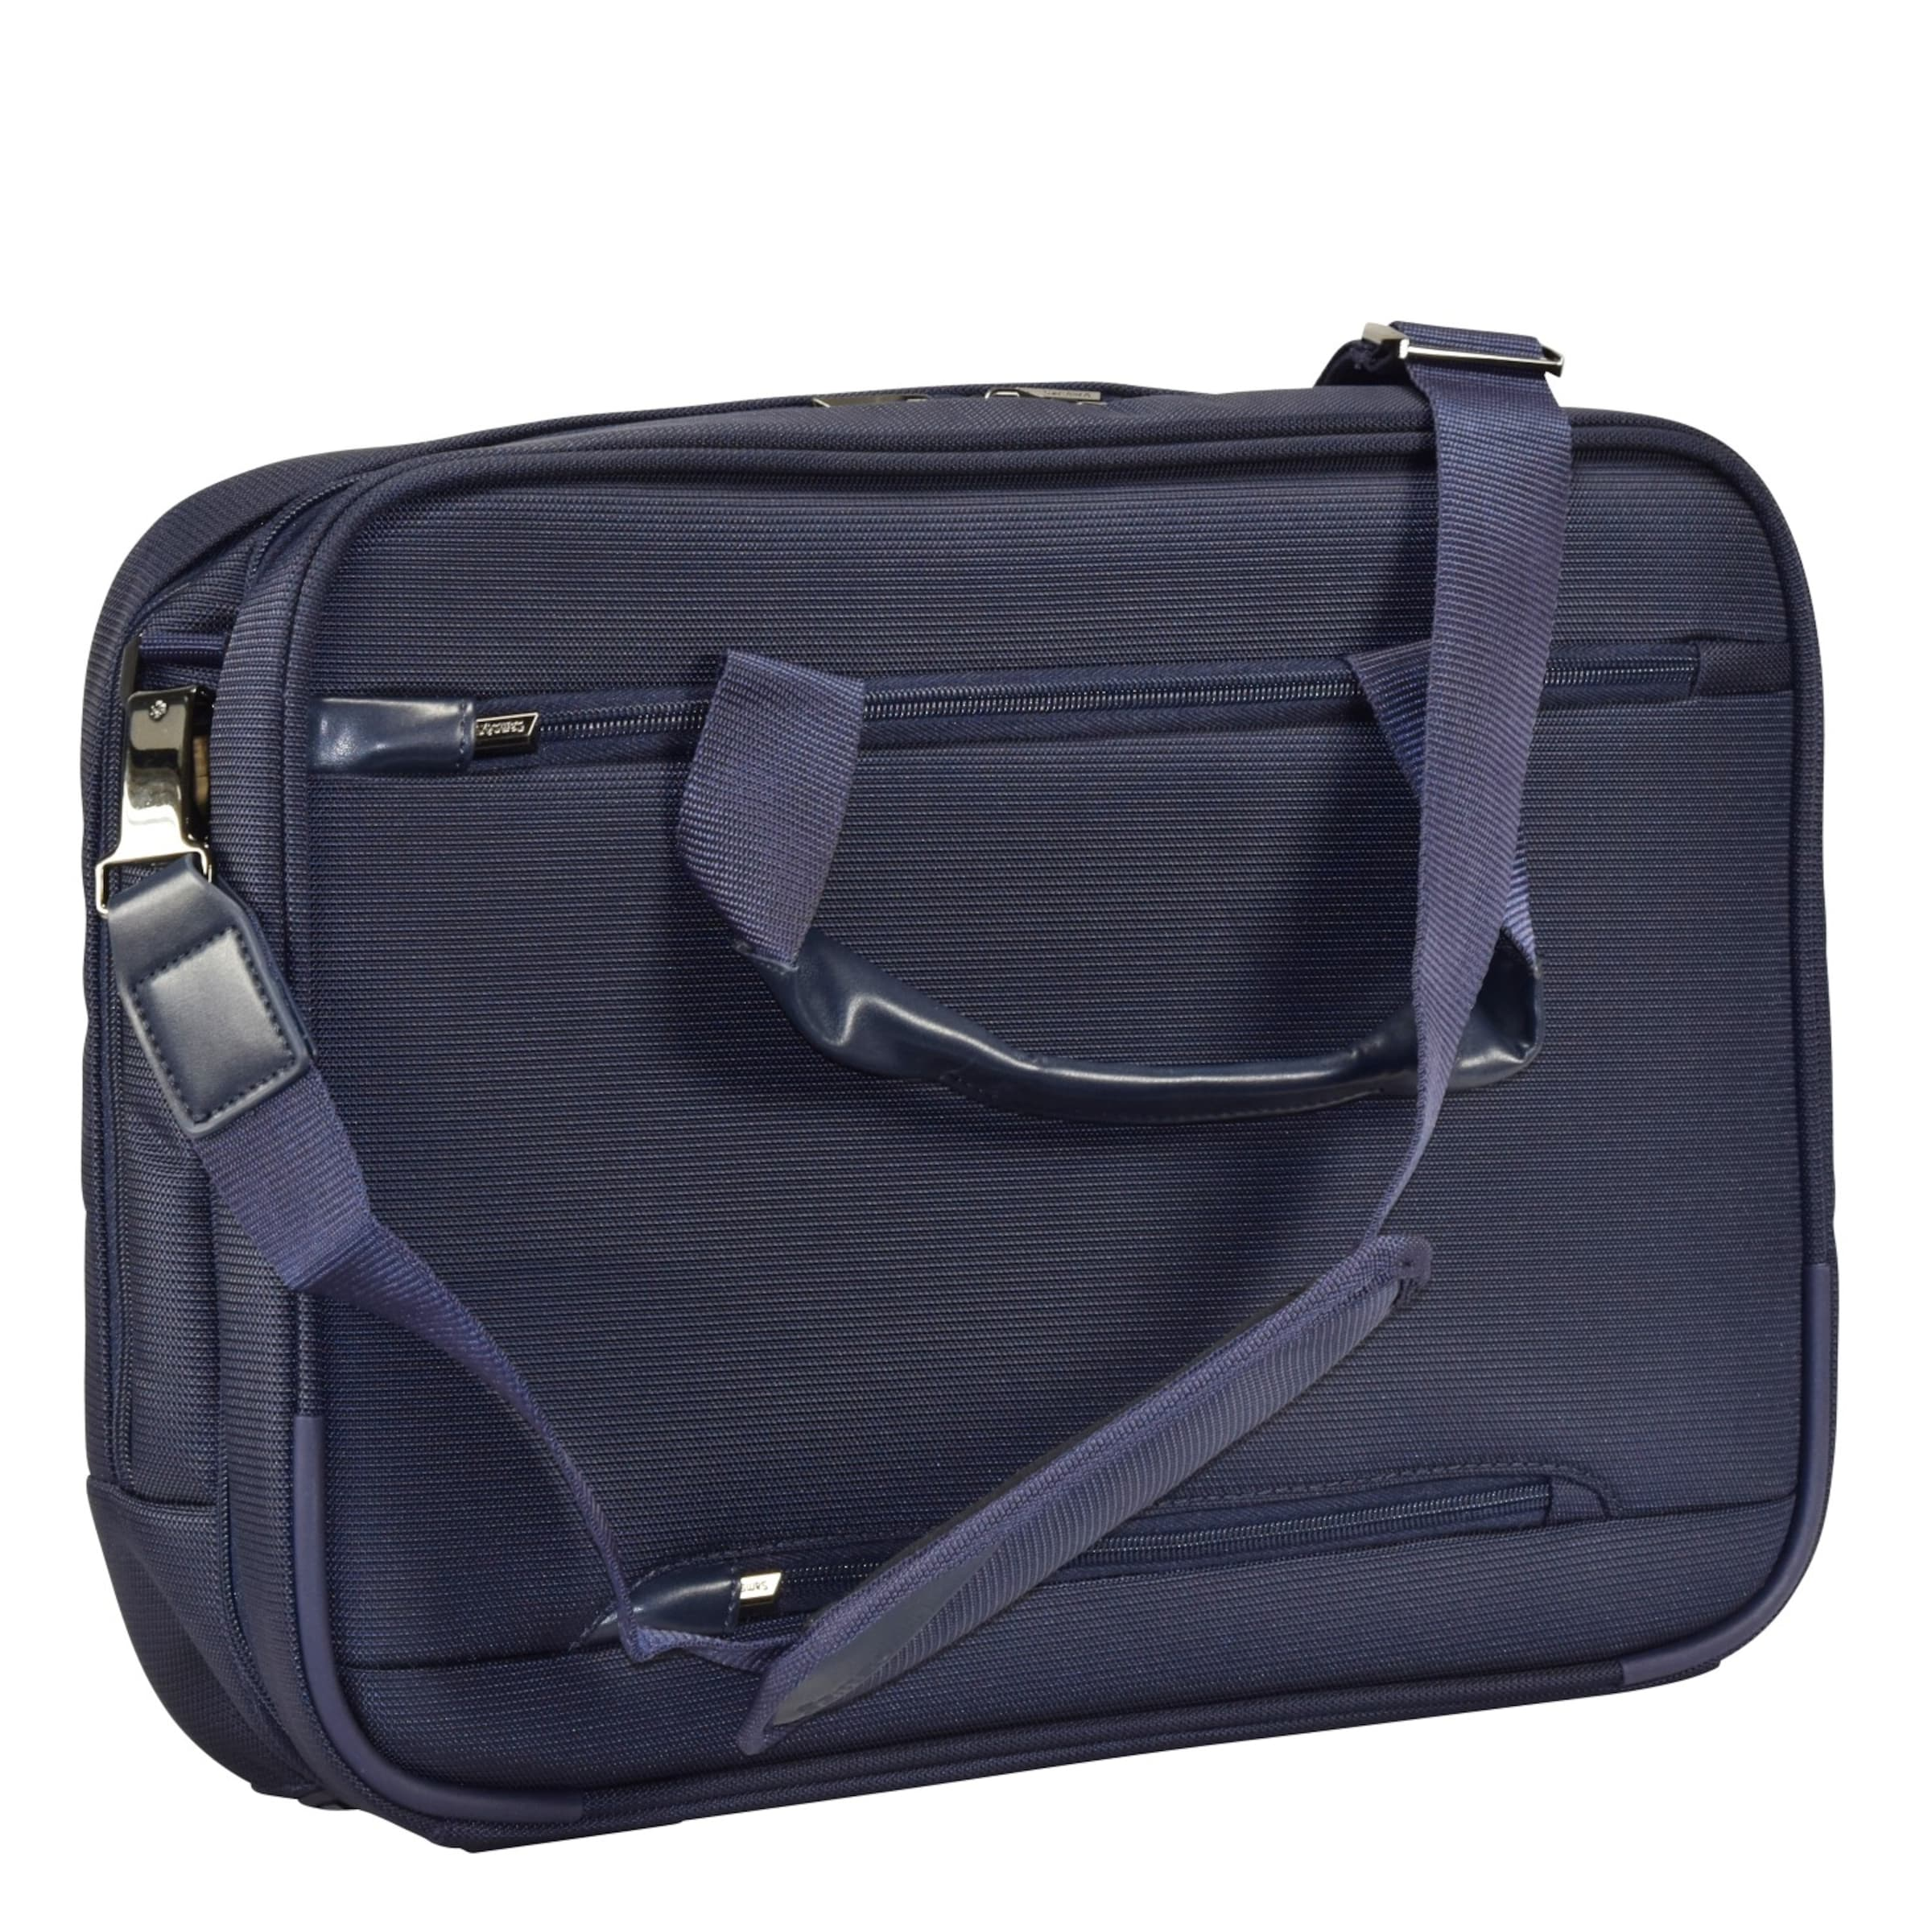 SAMSONITE 44 XBR SAMSONITE cm Laptopfach Aktentasche XBR 7xT7qwF